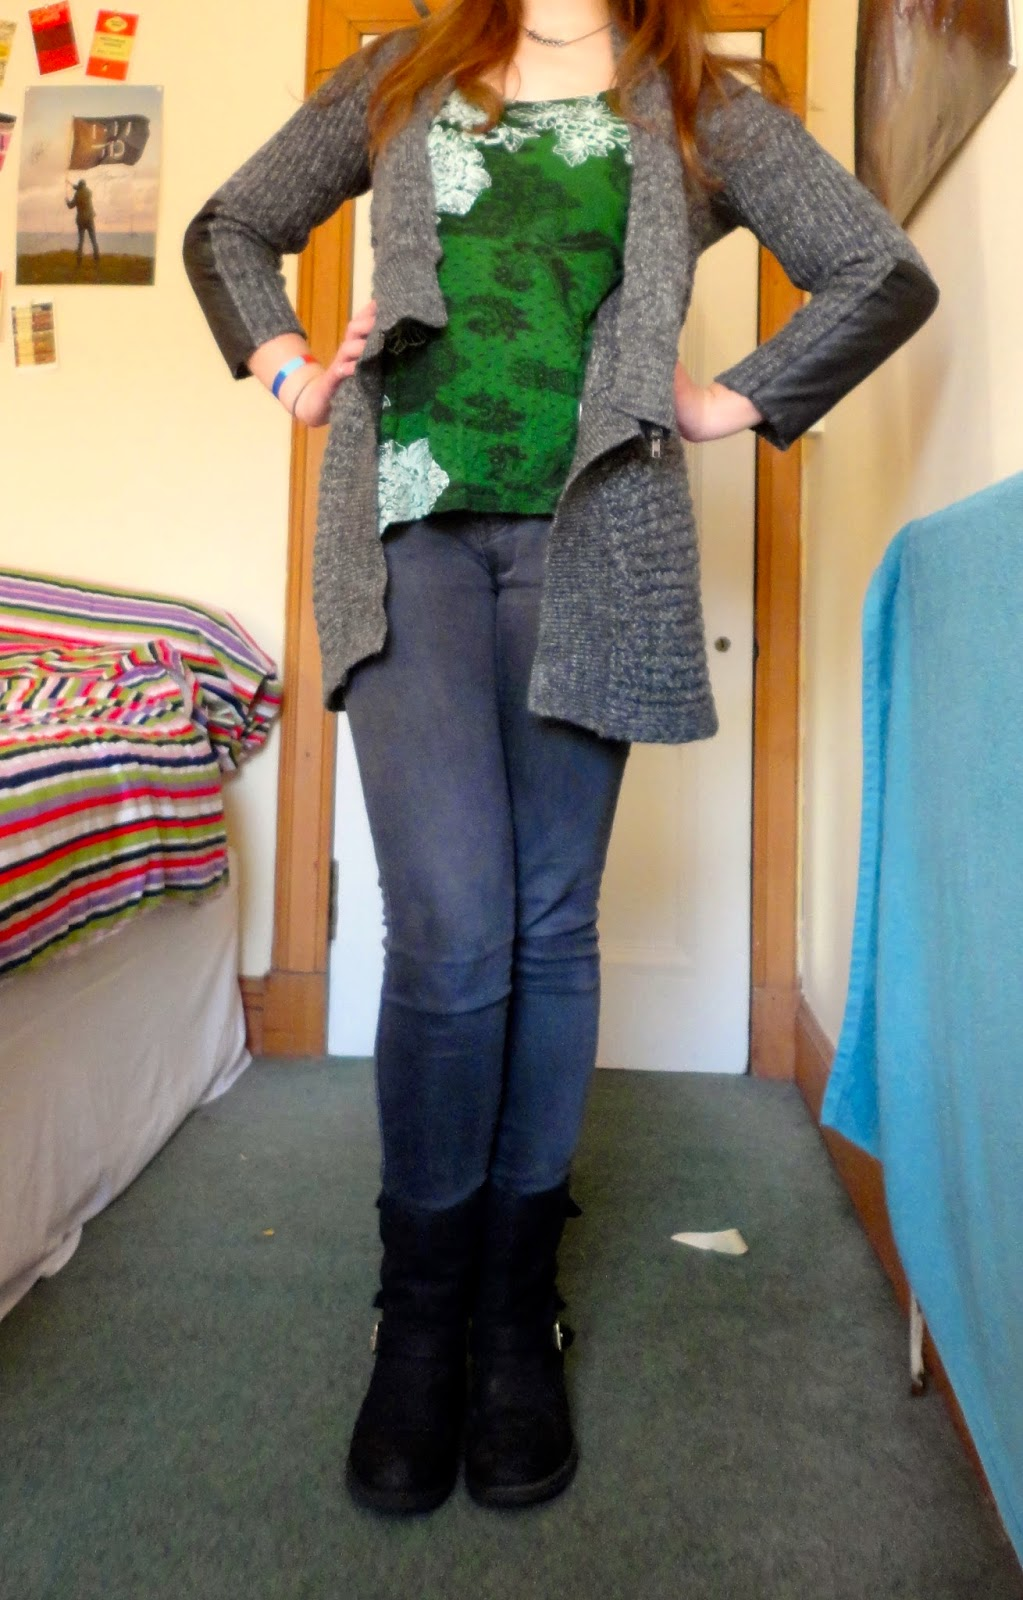 Winter outfit of grey cardigan, green top, jeans and boots